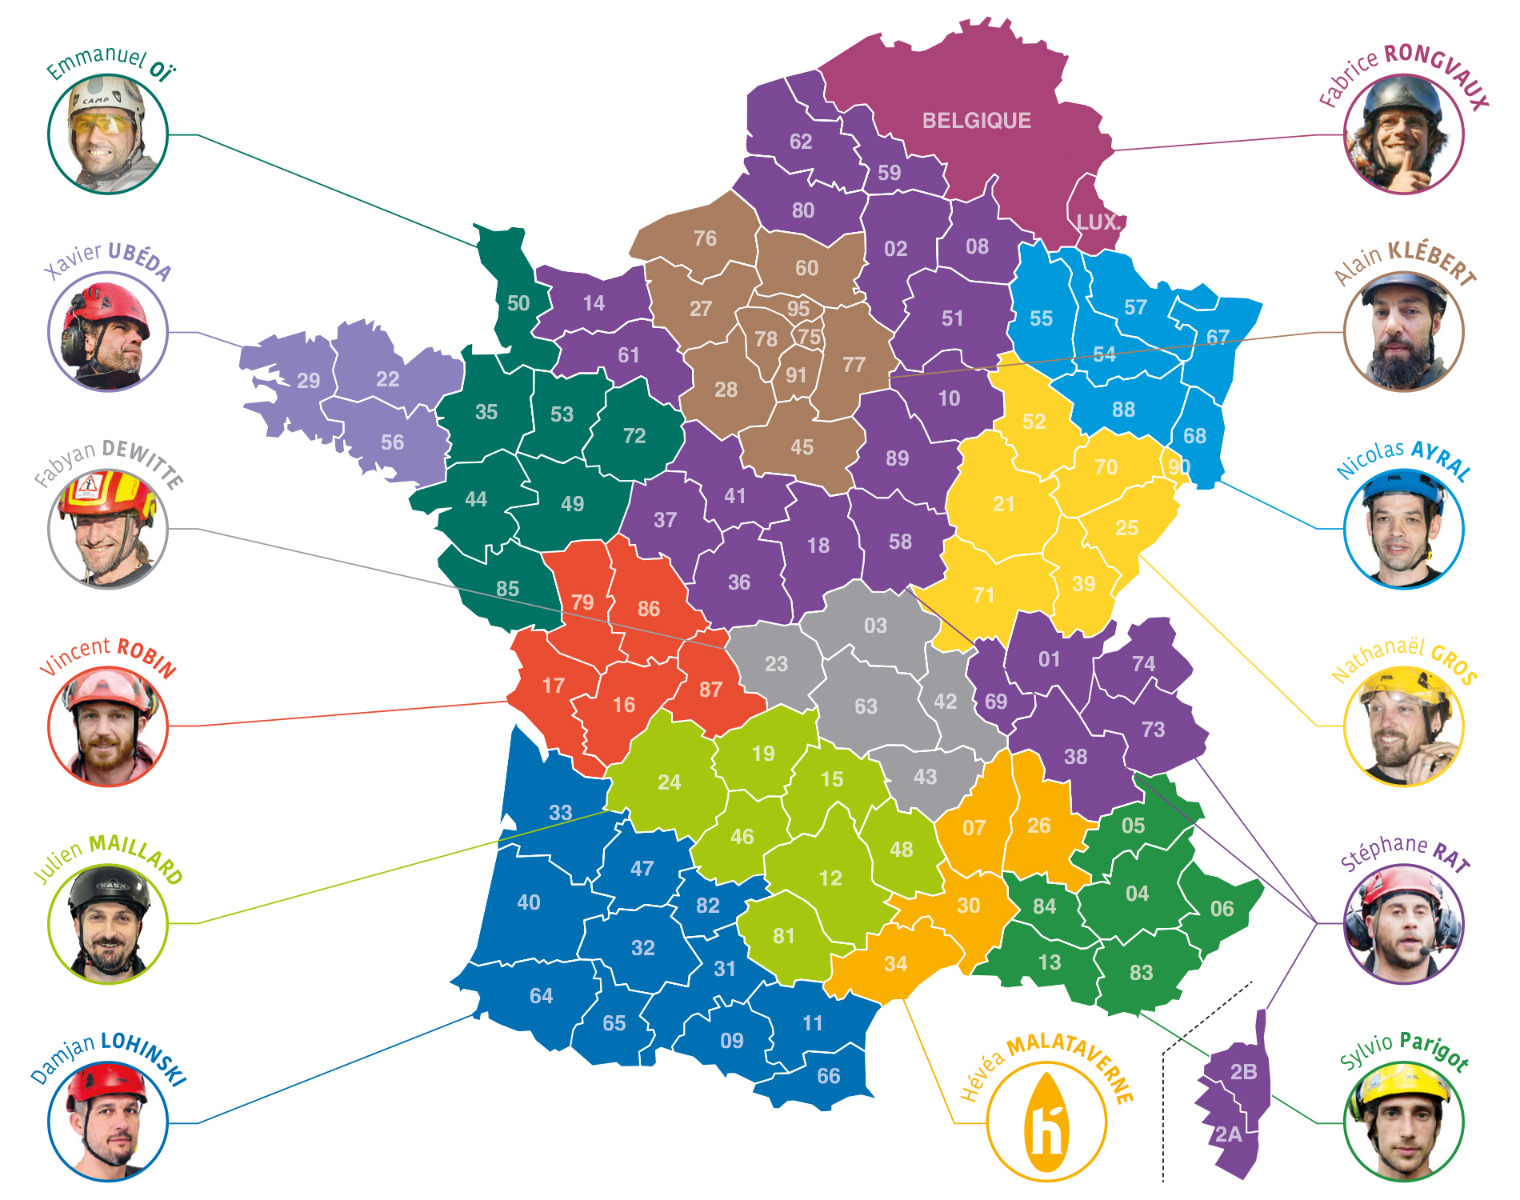 Carte des experts 2020